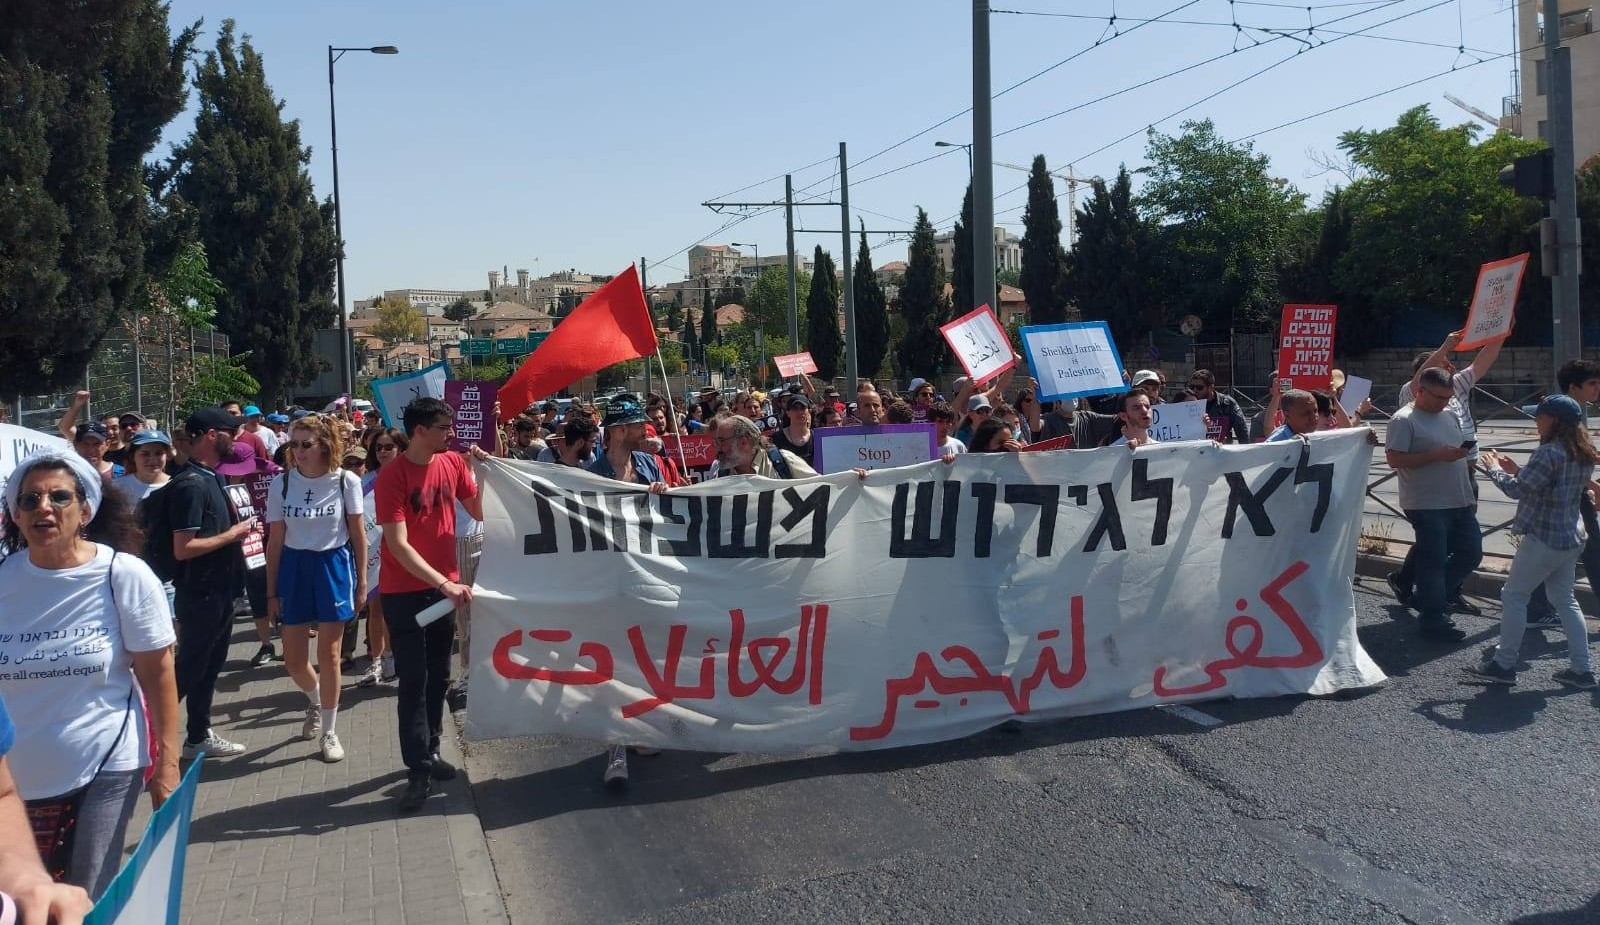 """Demonstrators protest the pending eviction of Palestinian families from their homes in the neighborhood of Sheikh Jarrah in occupied East Jerusalem, June 11, 2021. The large banner reads """"NO to the eviction of families."""""""